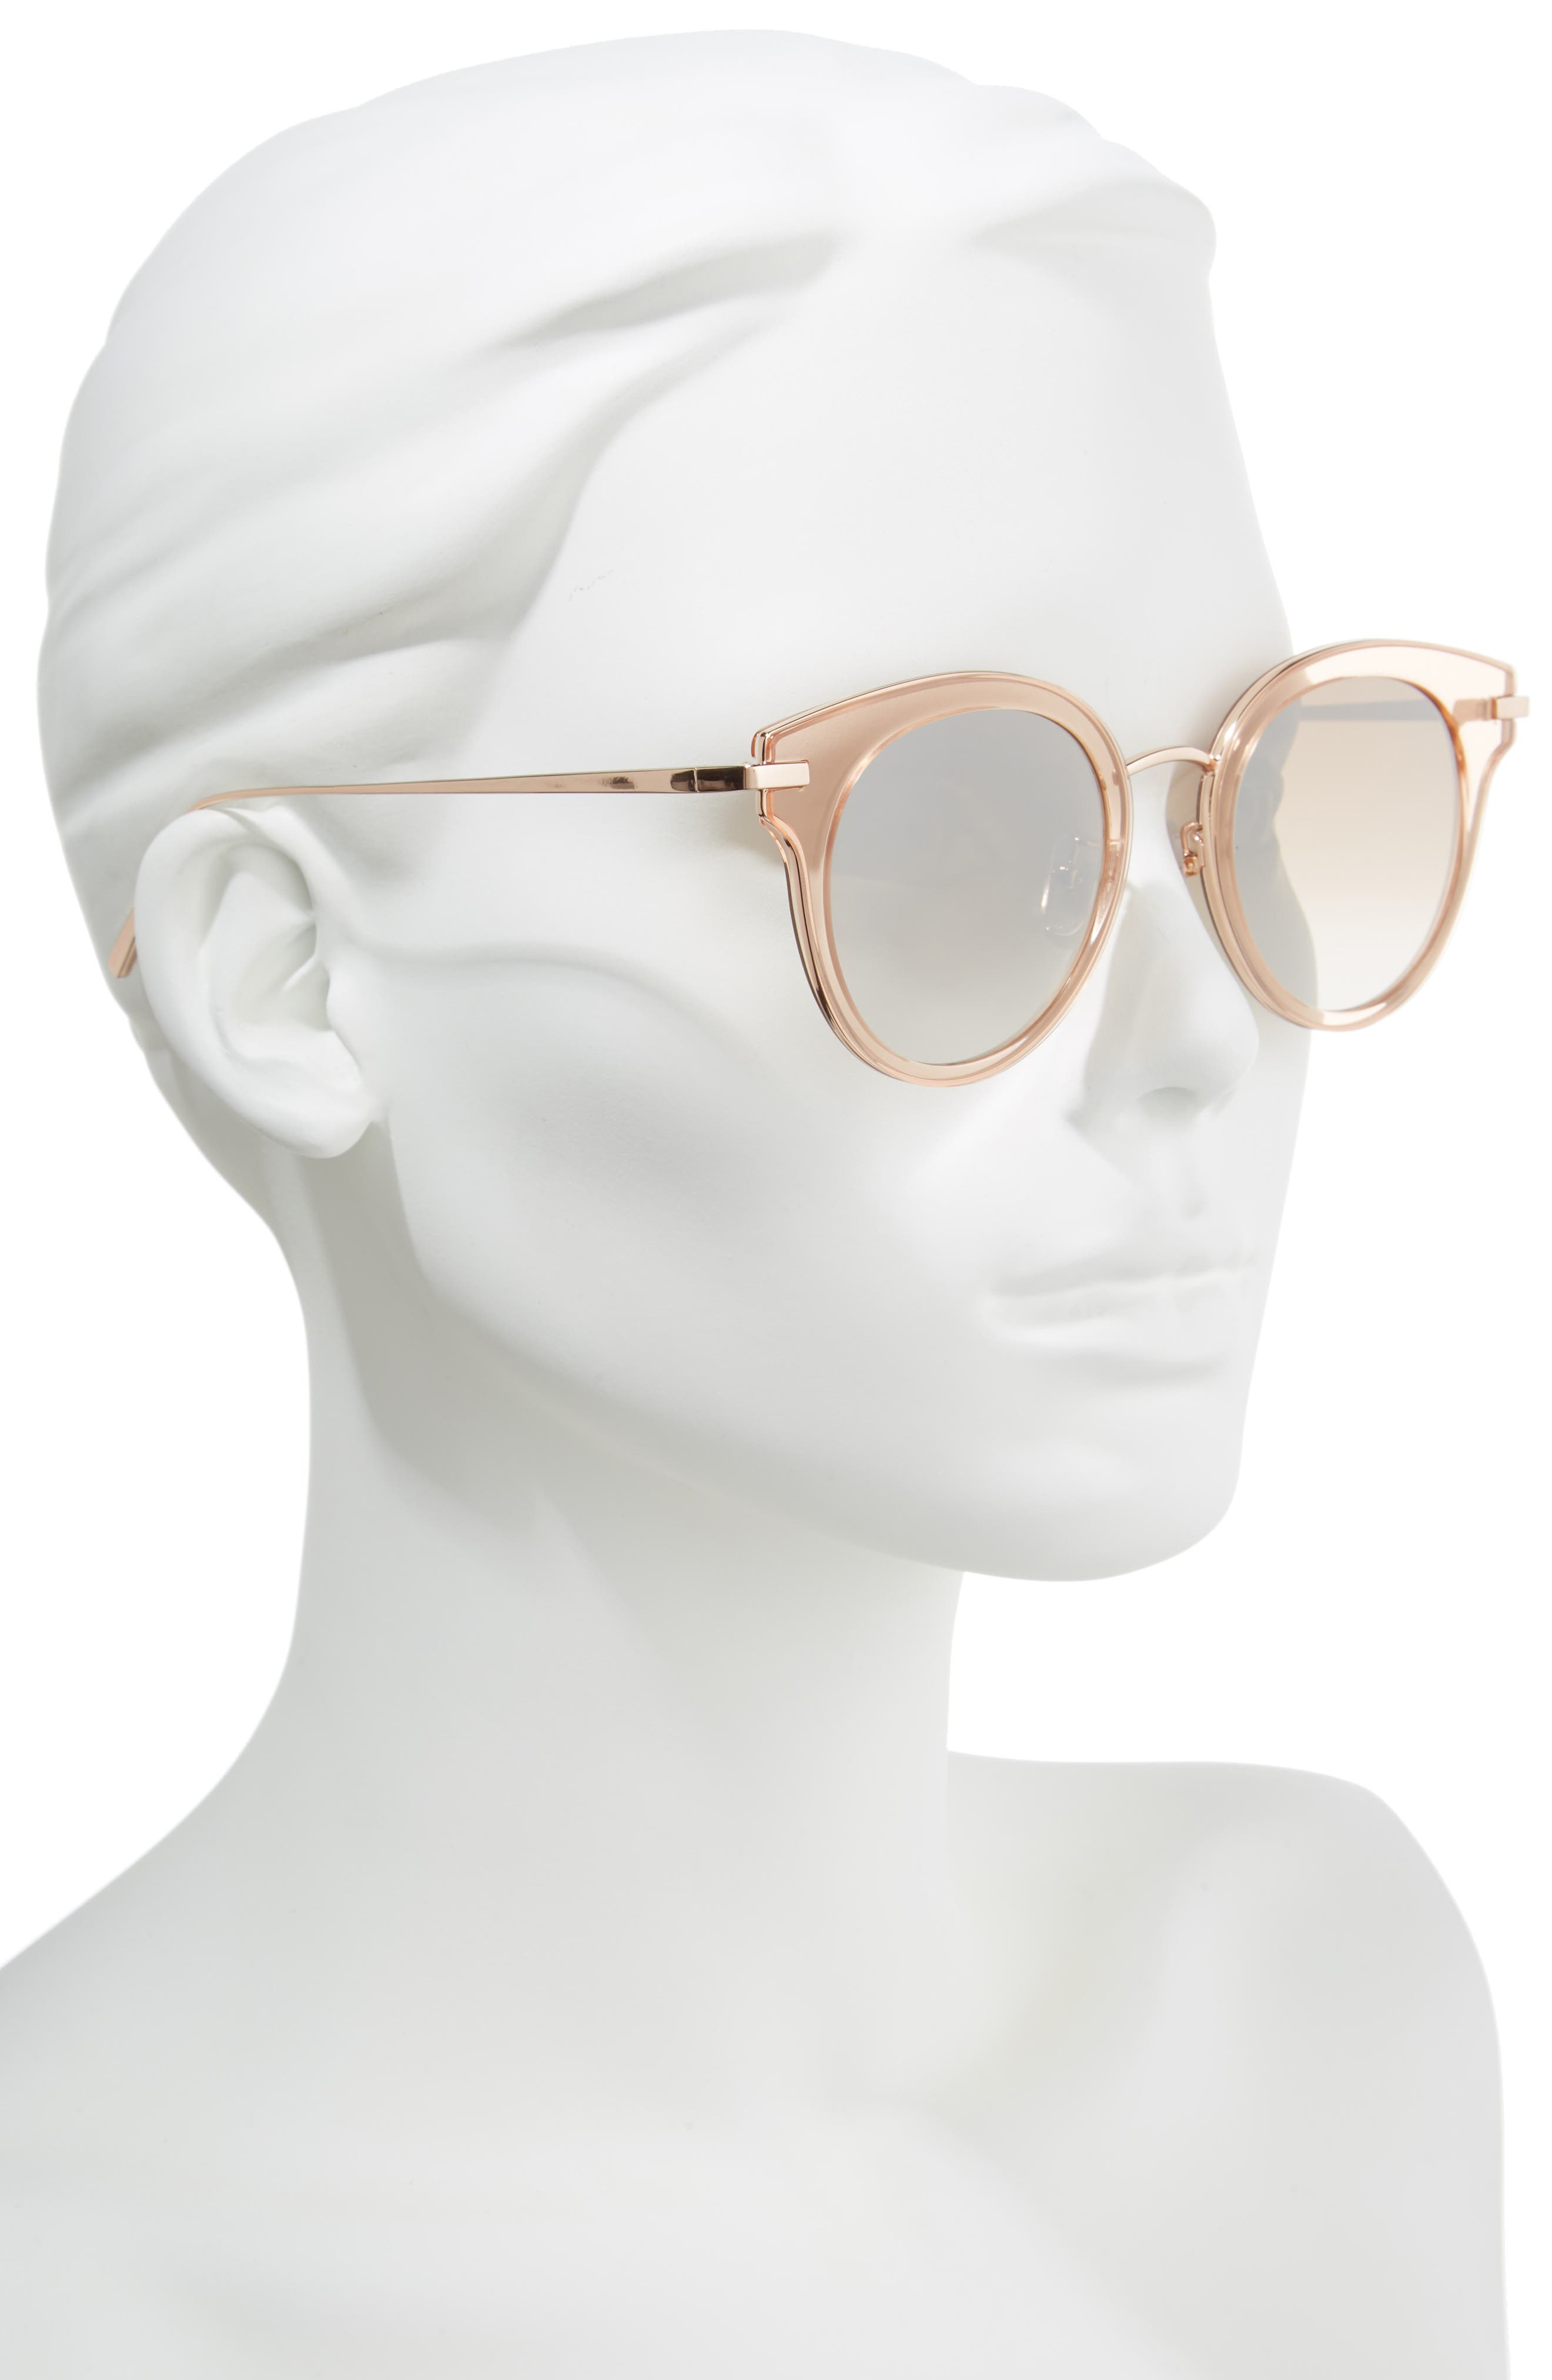 50mm Round Sunglasses,                             Alternate thumbnail 2, color,                             Rose Gold/Brown Mirror